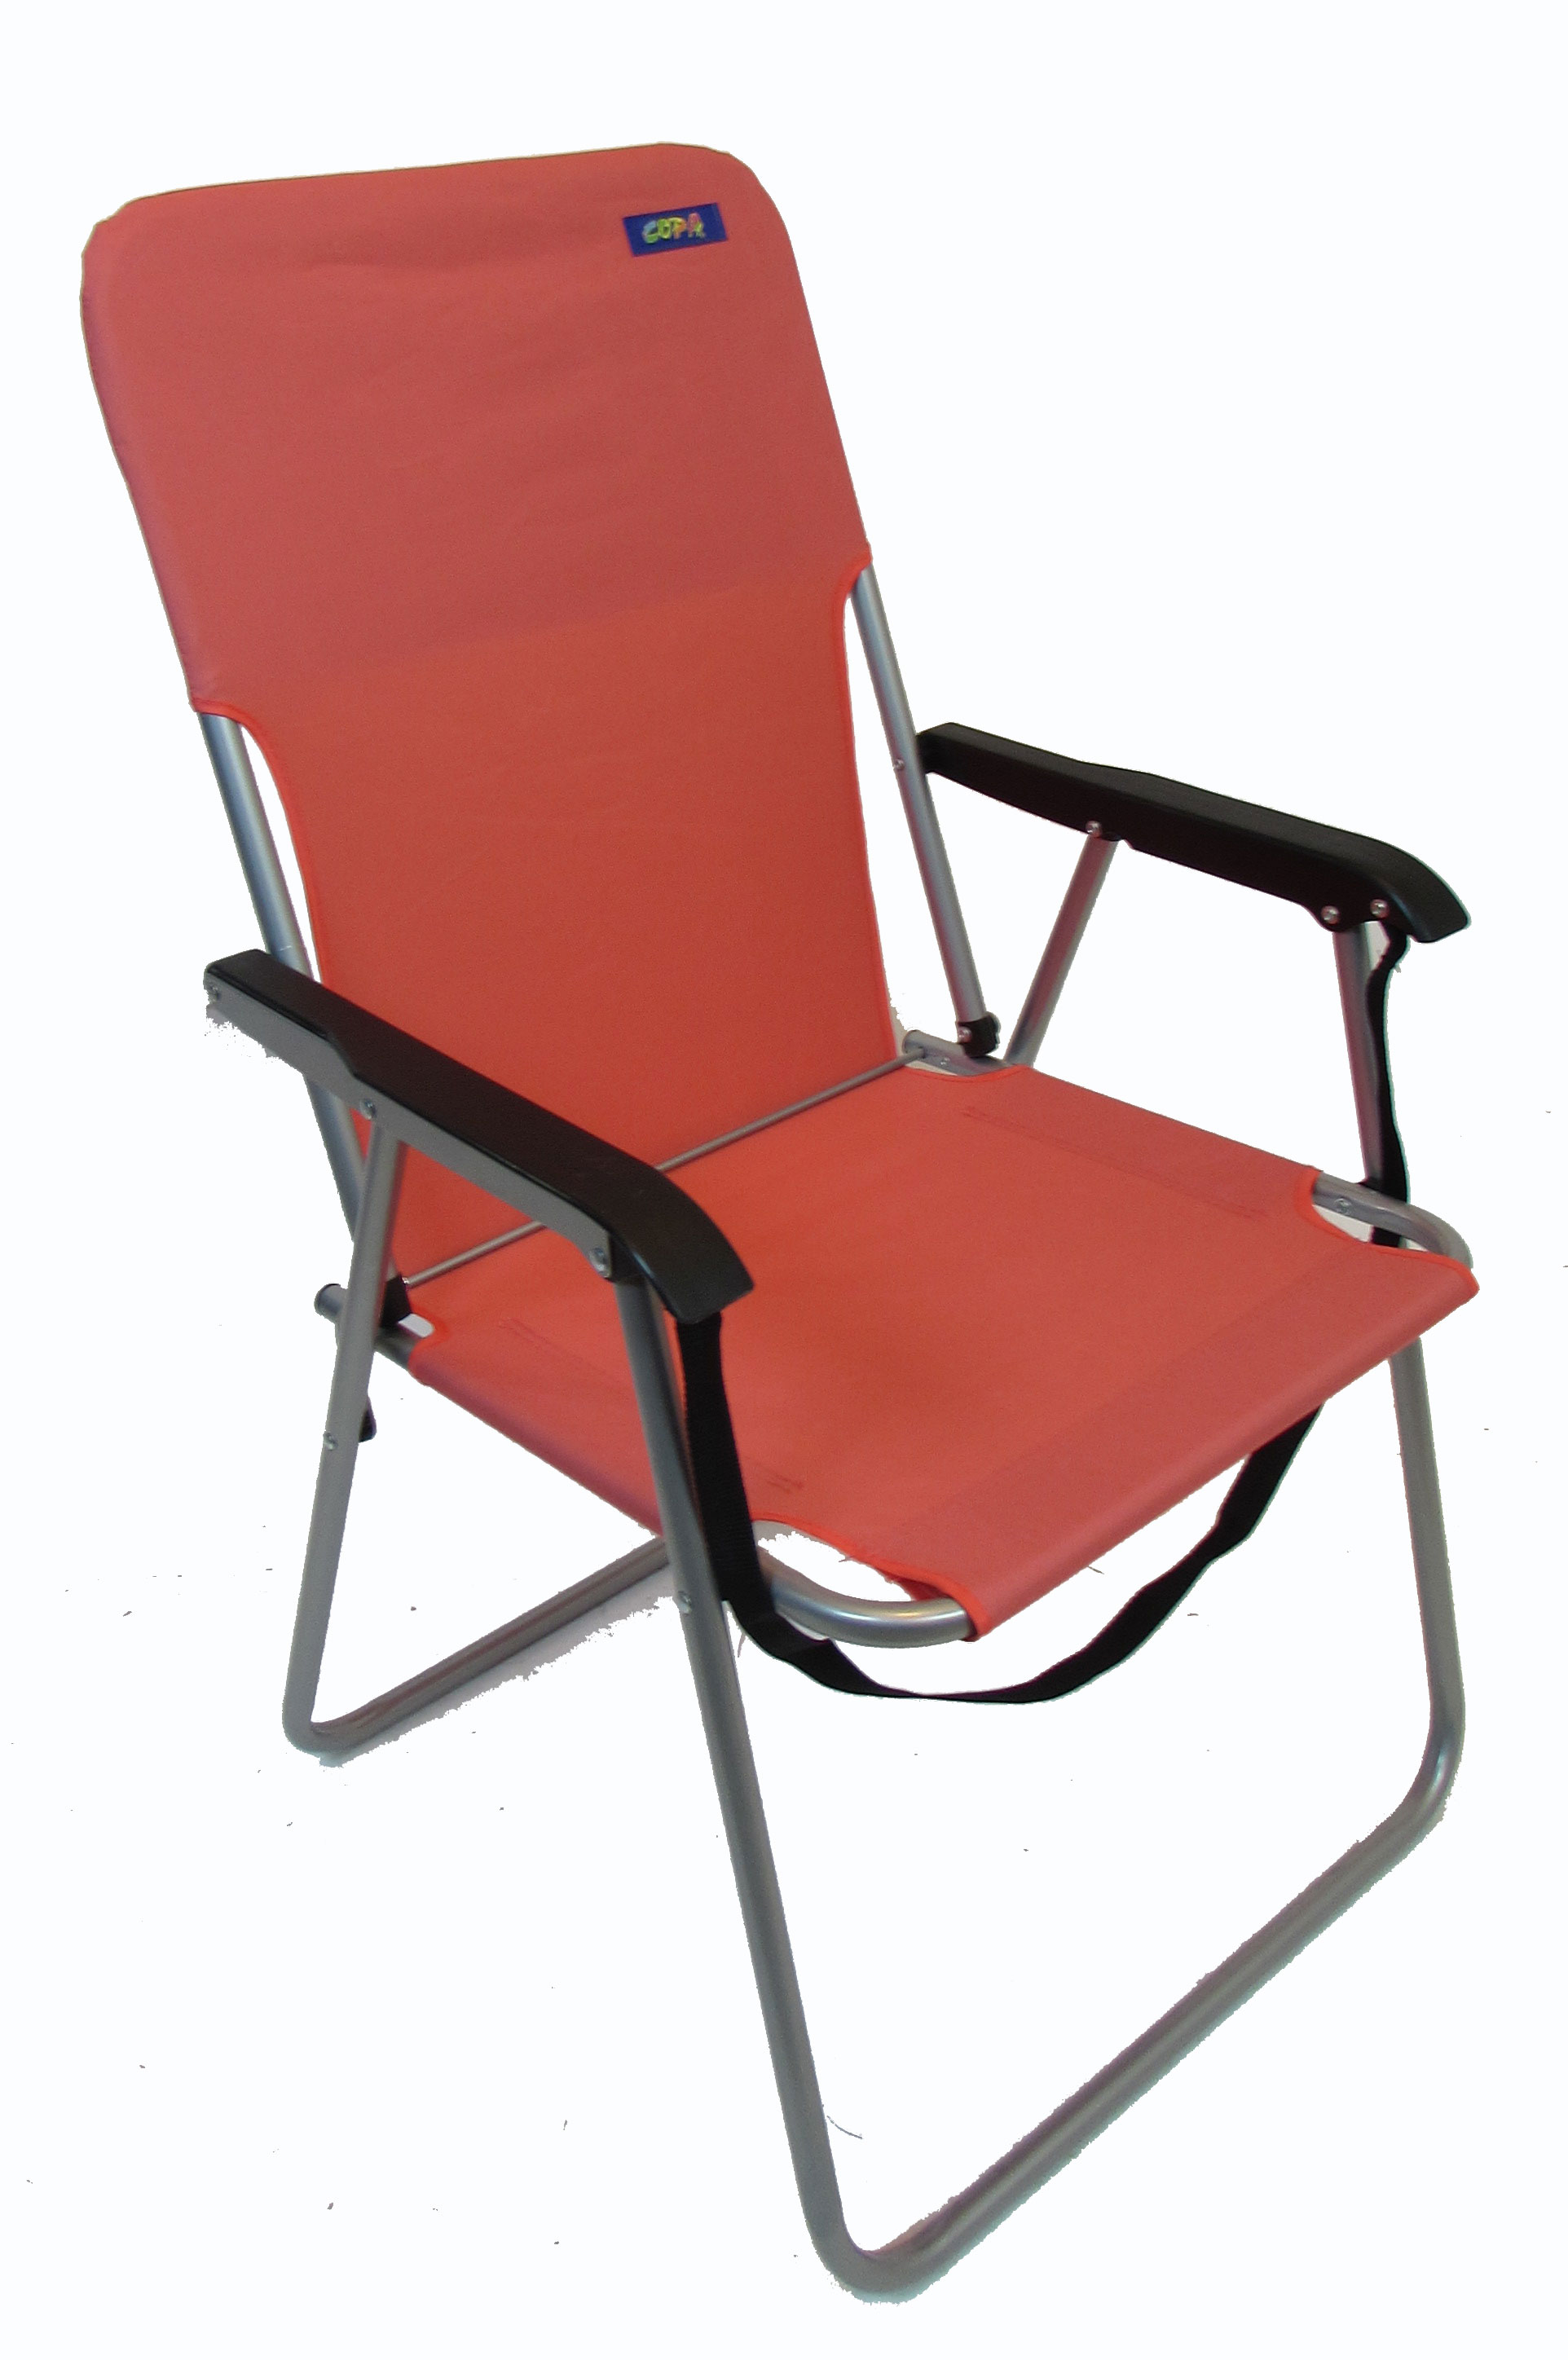 High Boy One Position Strap Chair by JGR Copa